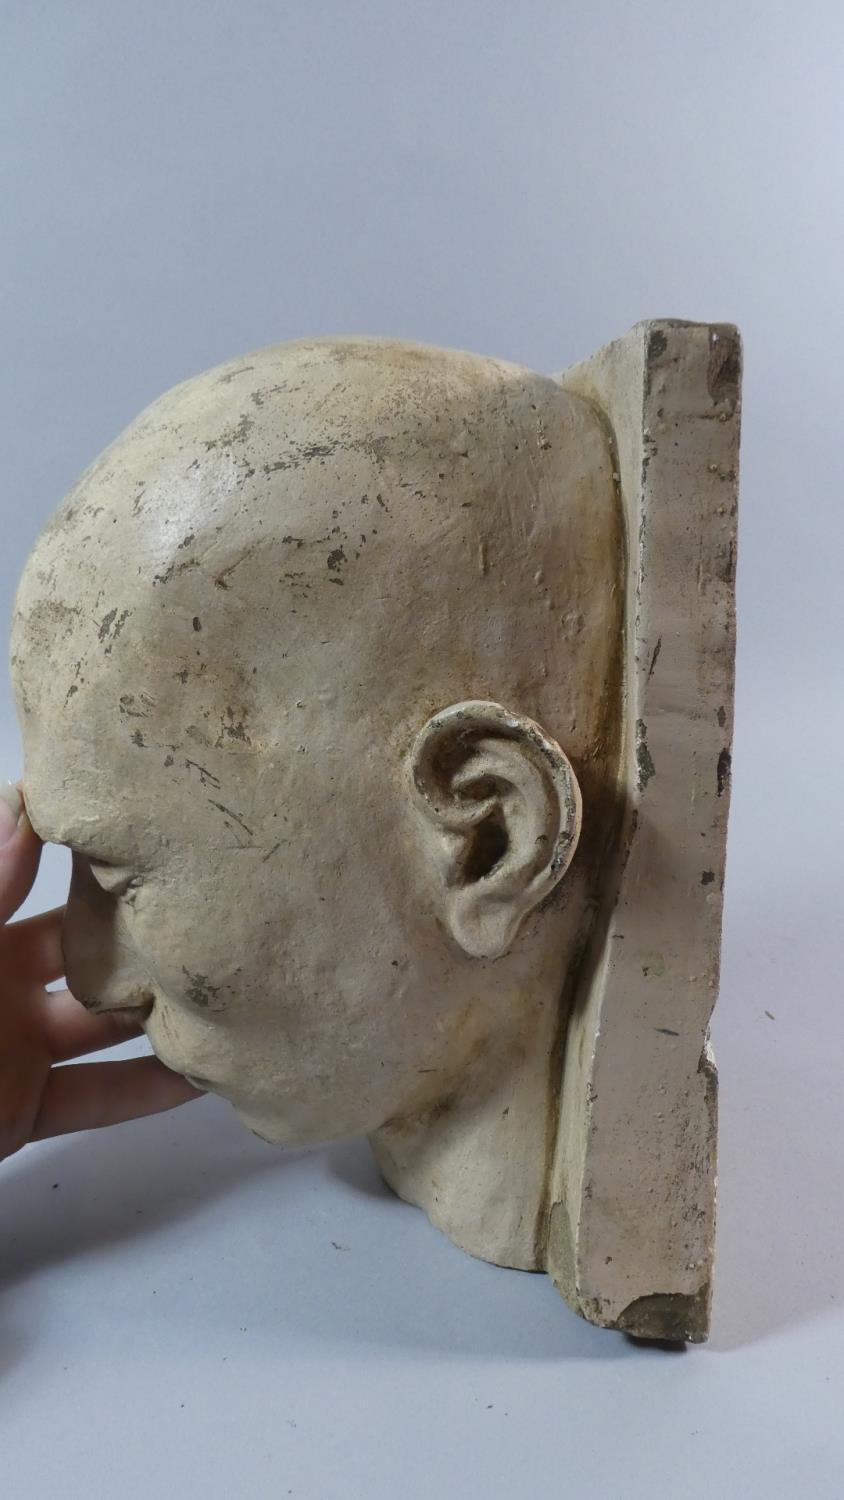 Lot 38 - A 19th Century Plaster Death Mask of a Shaven Headed Man, Possibly a Convict or Asylum Inmate.